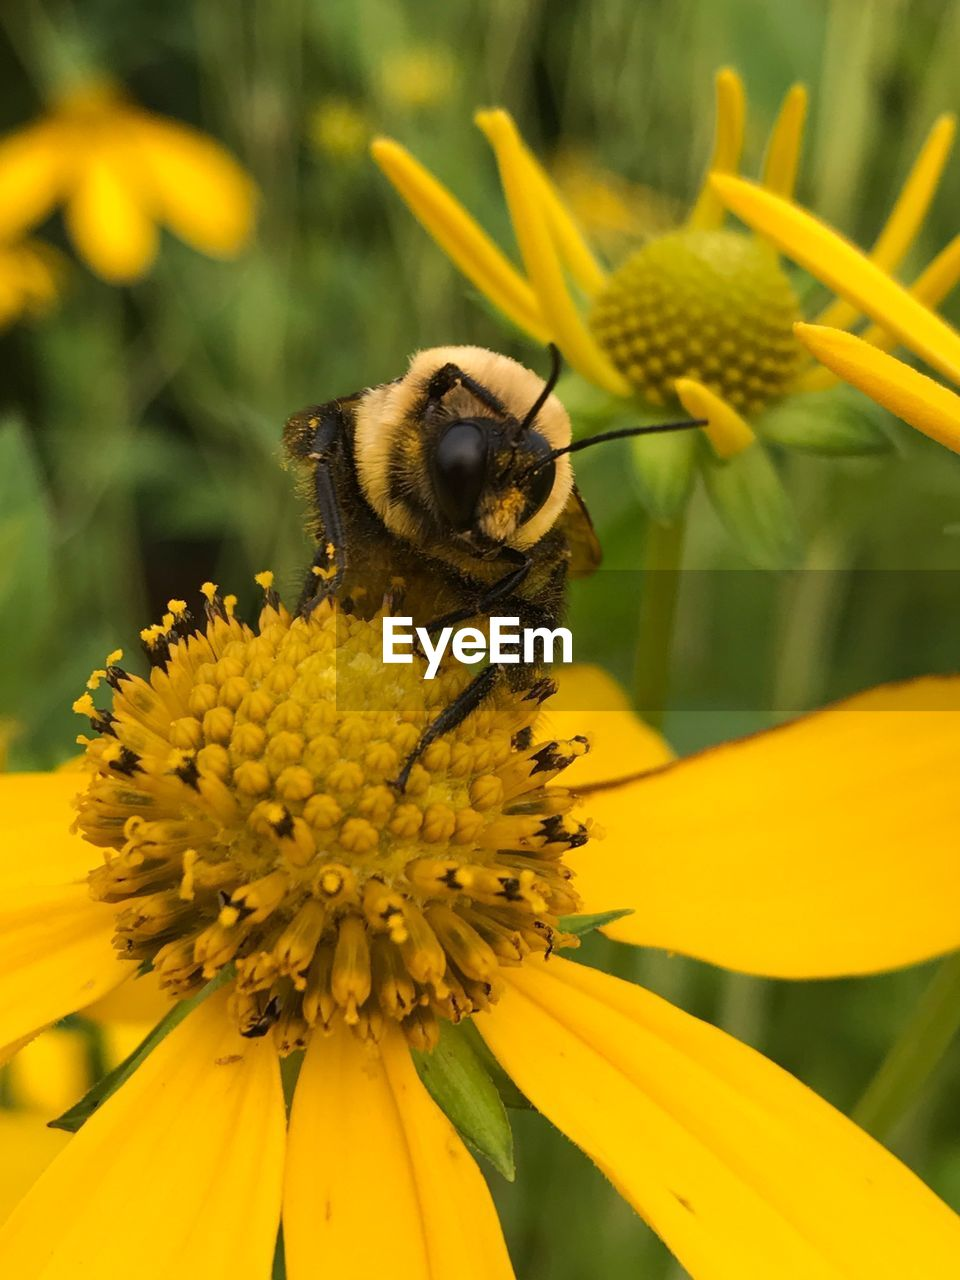 flower, flowering plant, yellow, animal themes, animal wildlife, invertebrate, fragility, animals in the wild, plant, petal, animal, insect, one animal, vulnerability, beauty in nature, flower head, growth, bee, freshness, close-up, pollination, pollen, no people